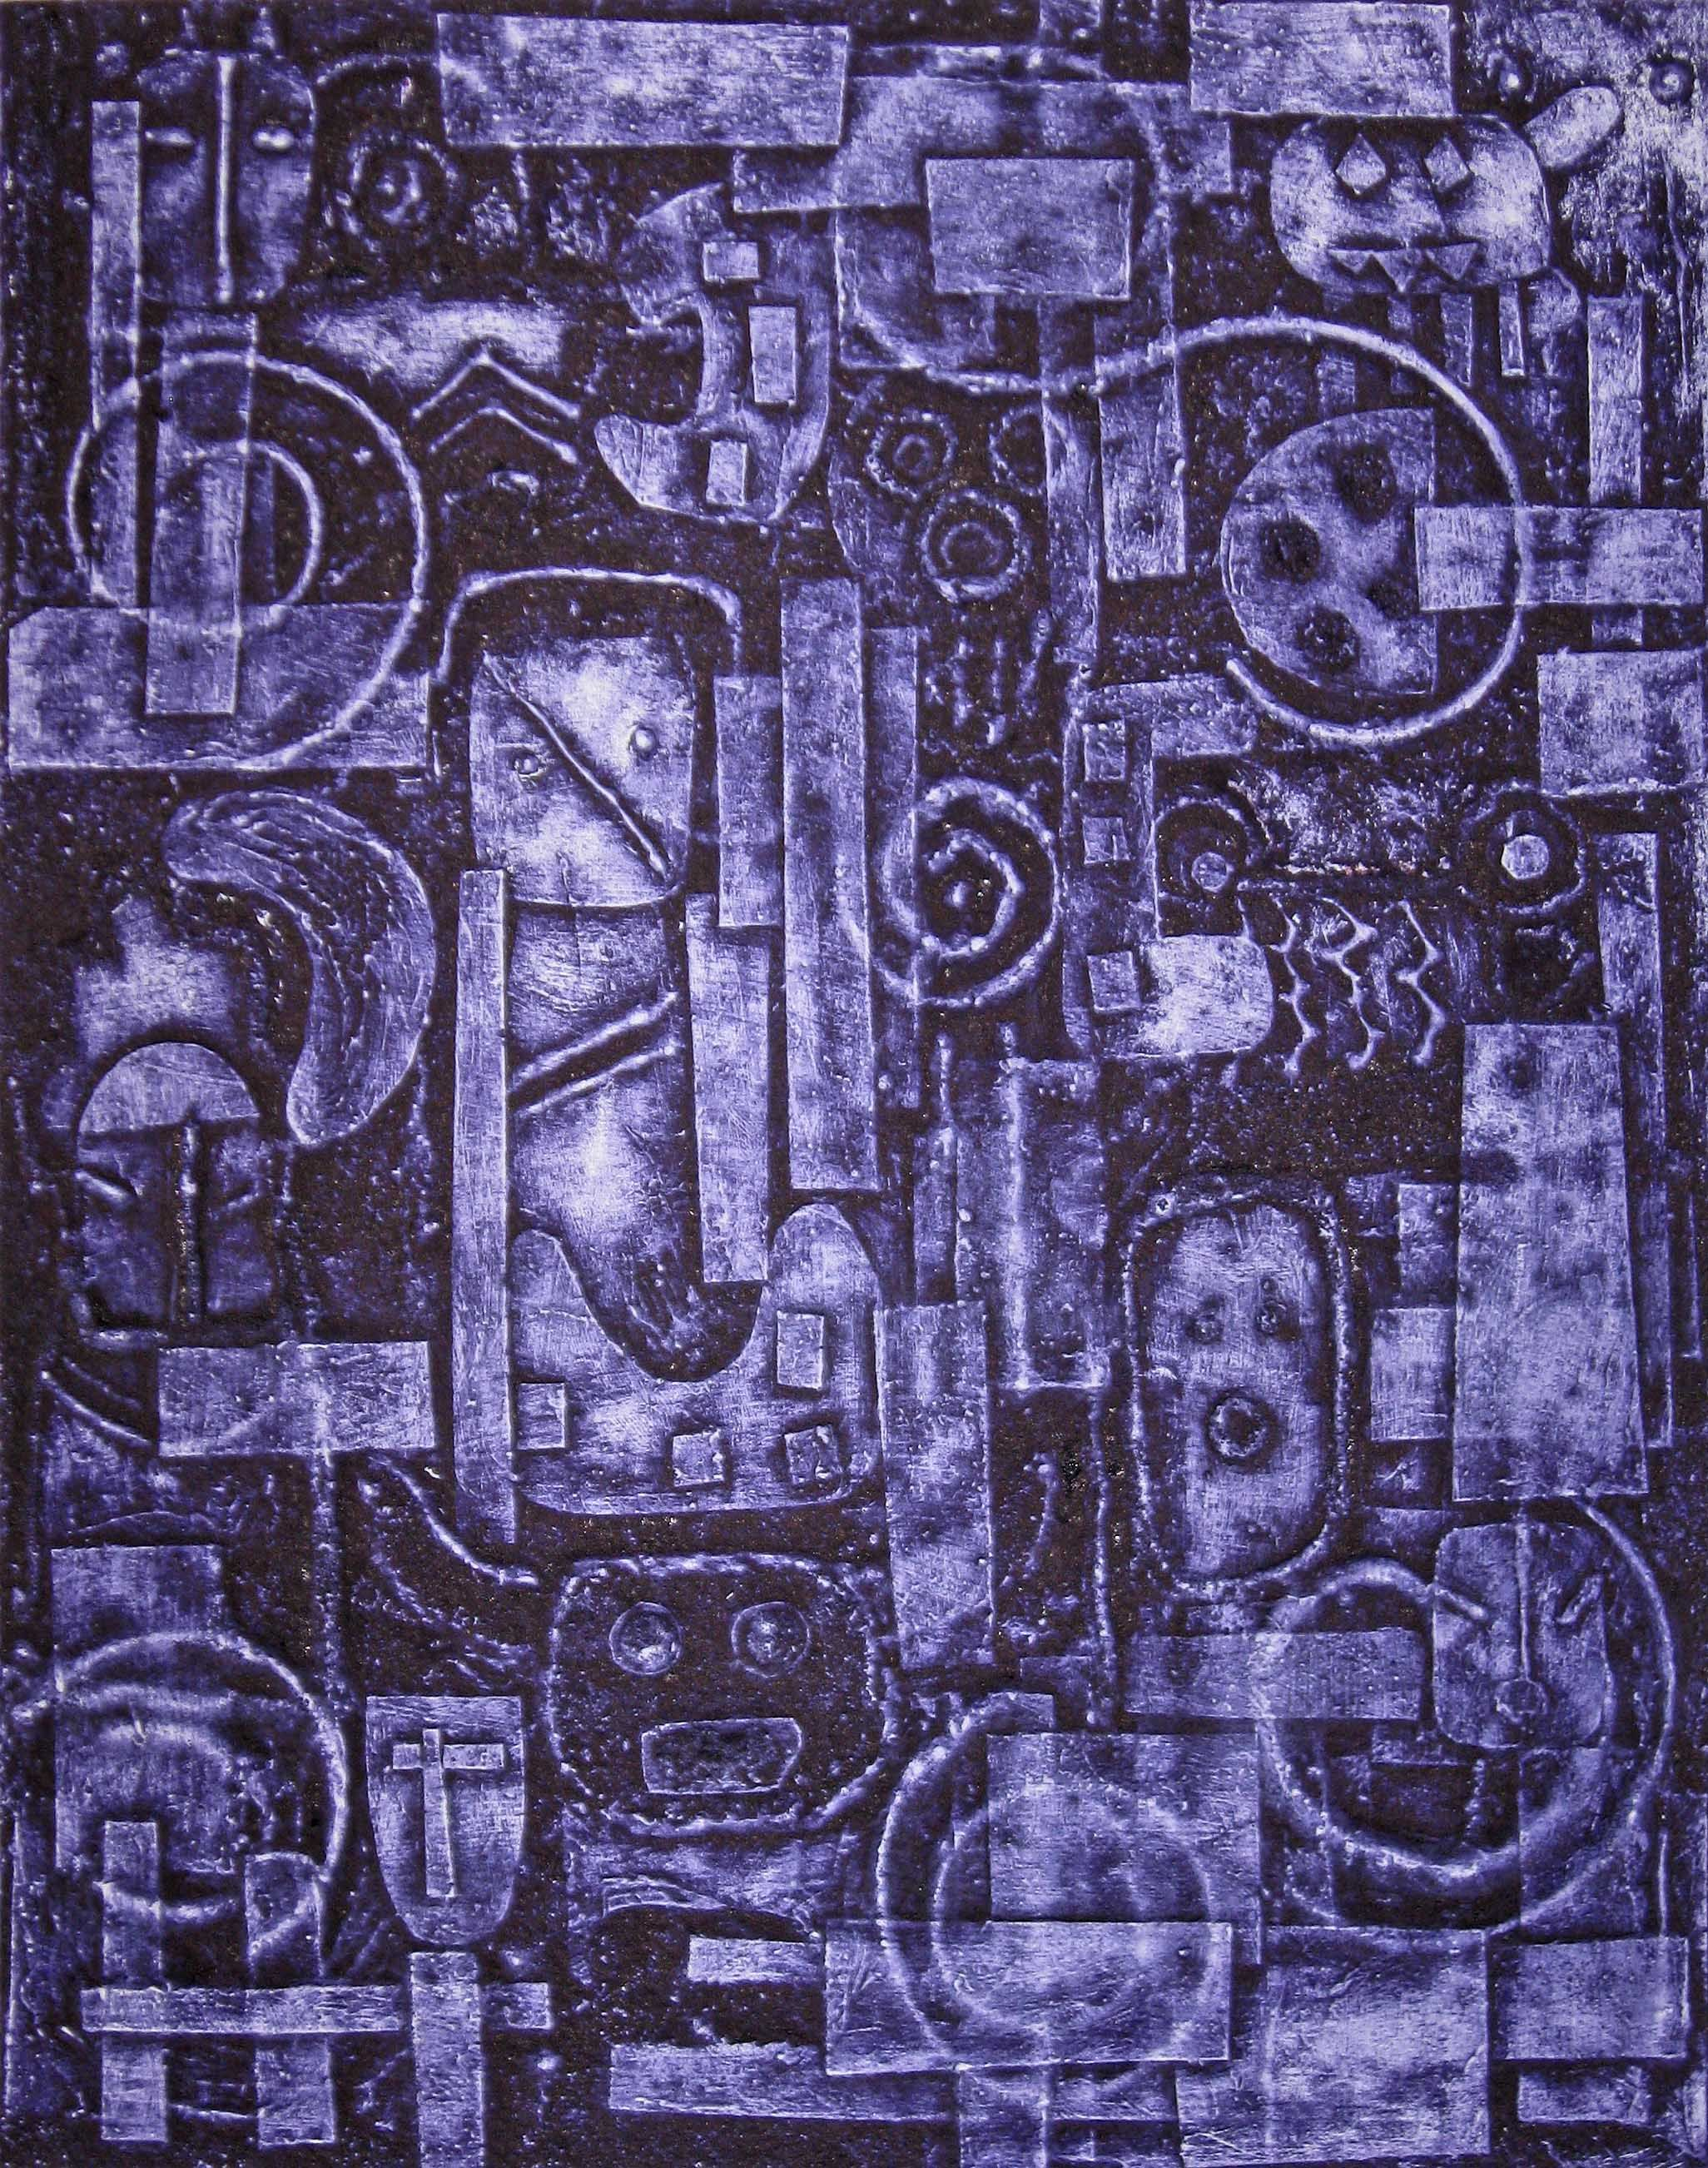 Collagraph Diptych - Lessons - Tes Teach